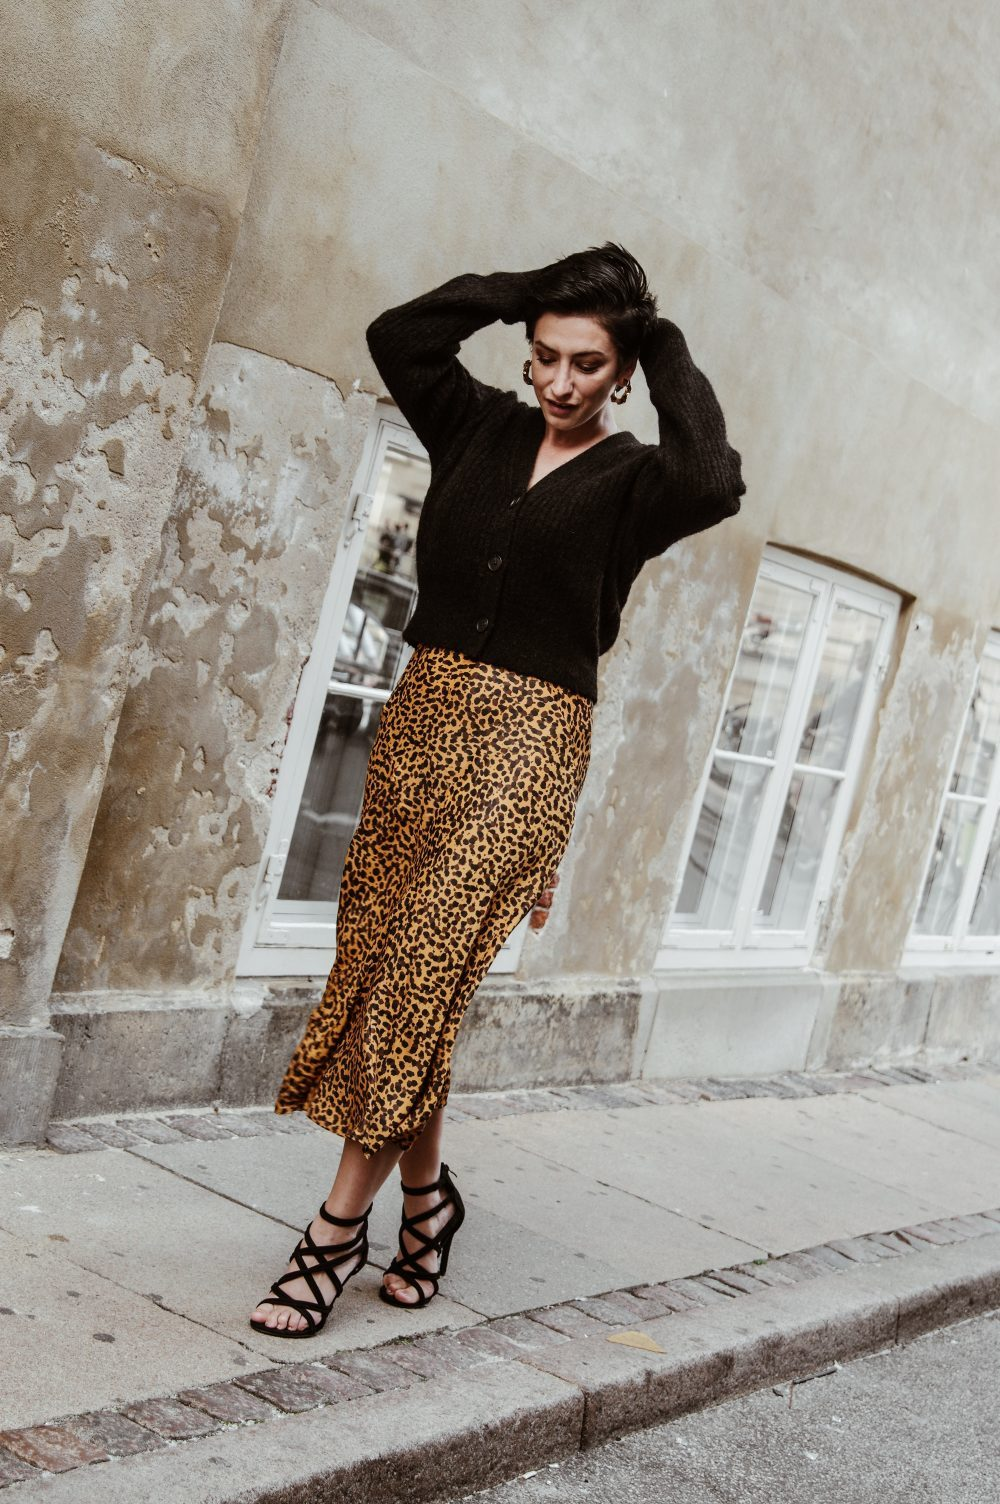 Fall-outfit-Sweater-and-leopard-skirt-scandinavian-outfit-streetstyle-Fall-fashion